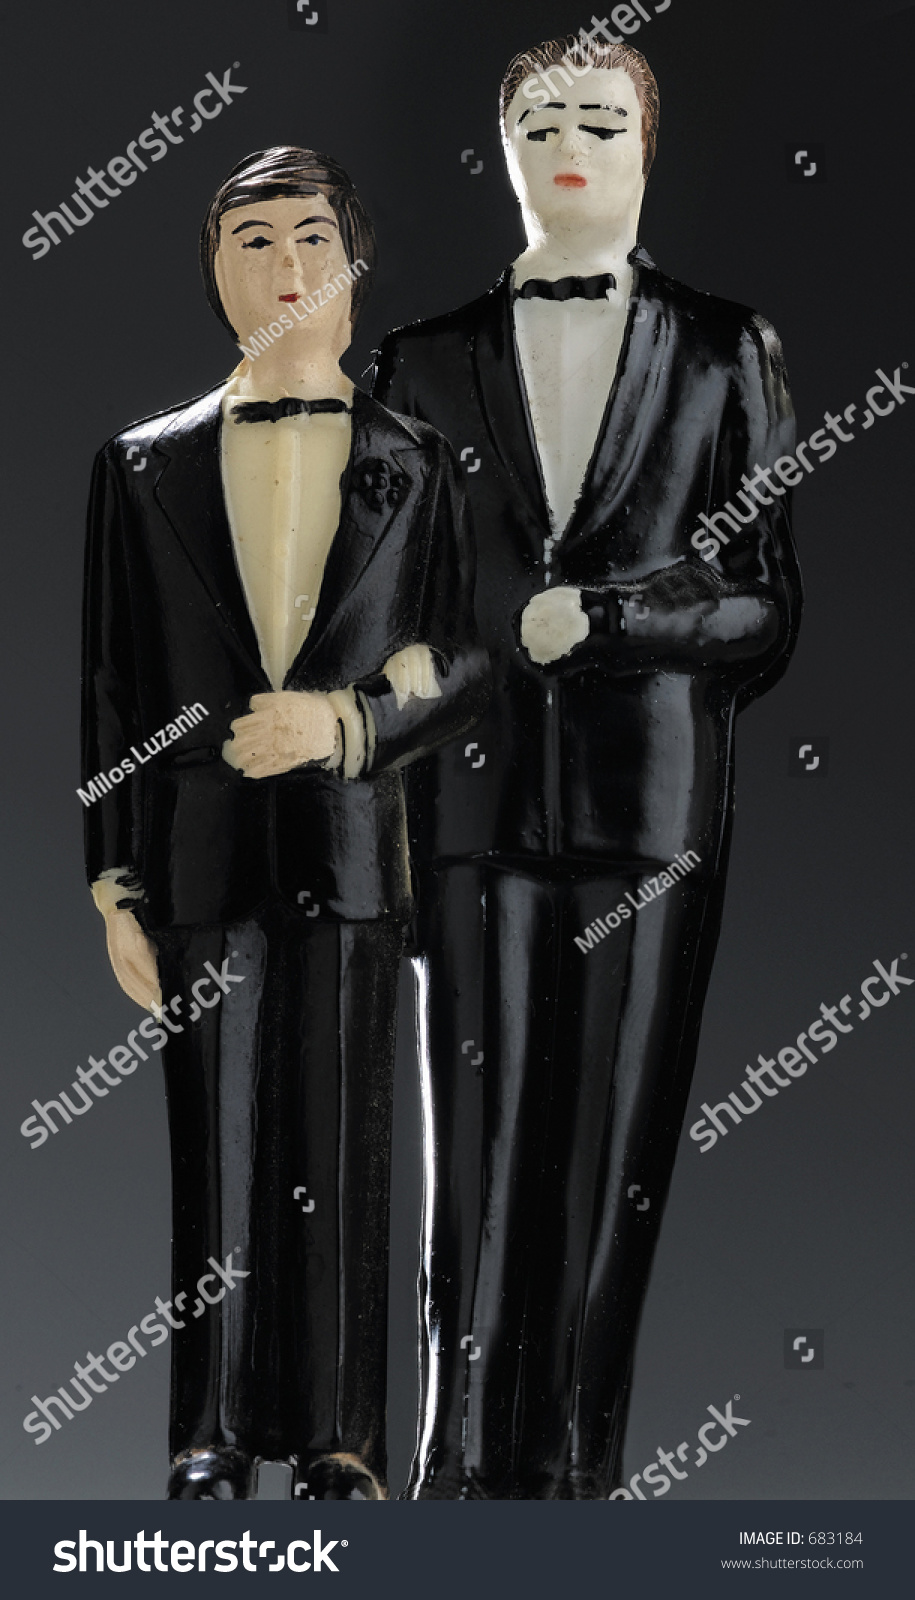 Two Guys Wedding Suits Stock Photo 683184 - Shutterstock